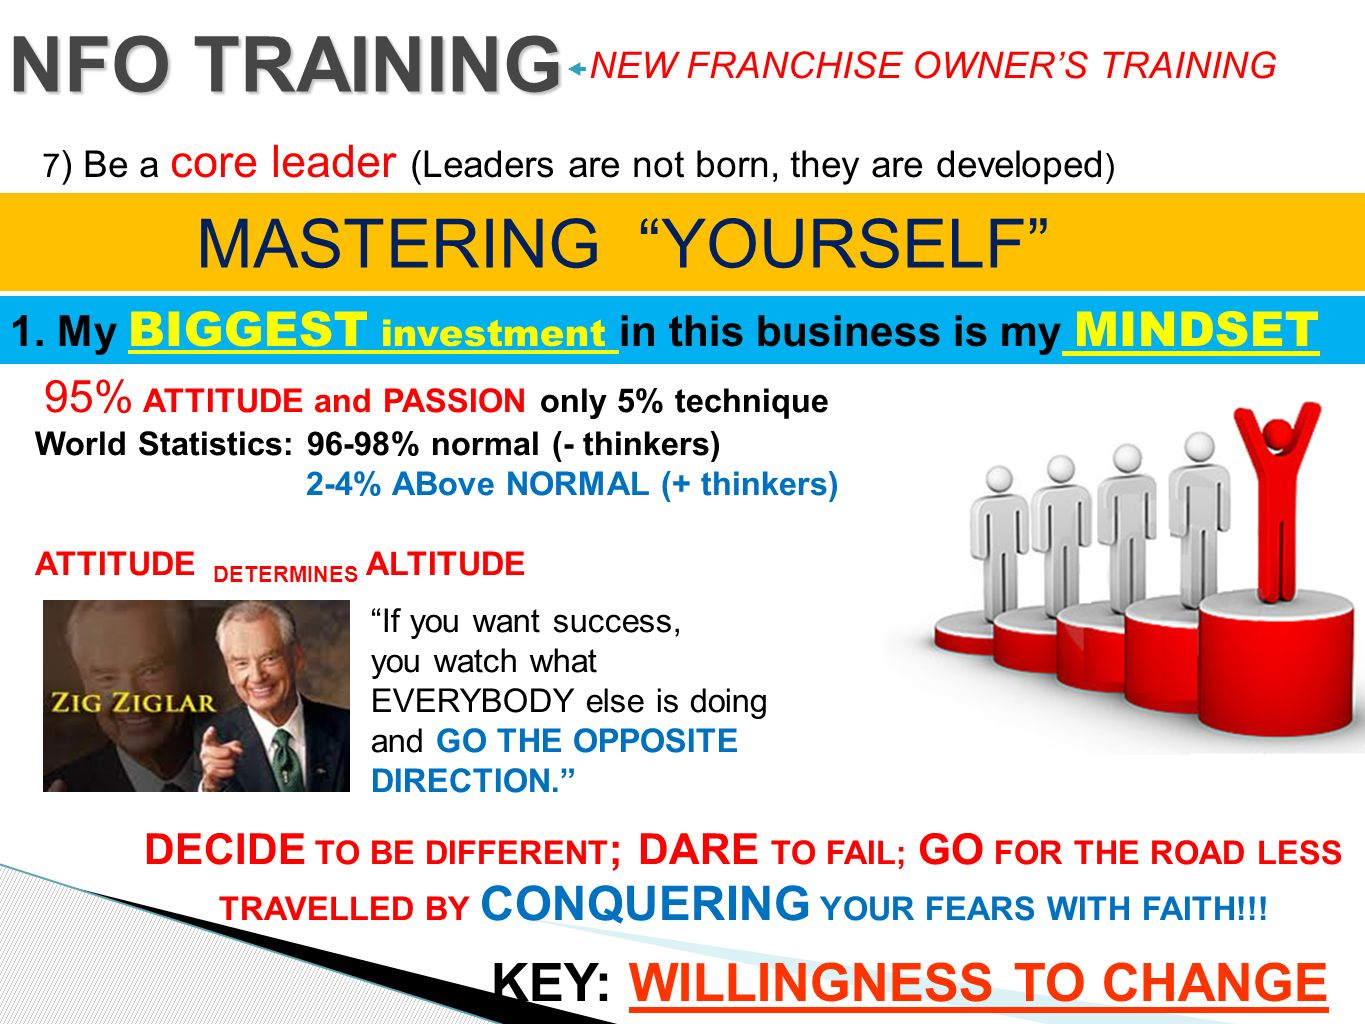 NFO TRAINING MASTERING YOURSELF KEY: WILLINGNESS TO CHANGE